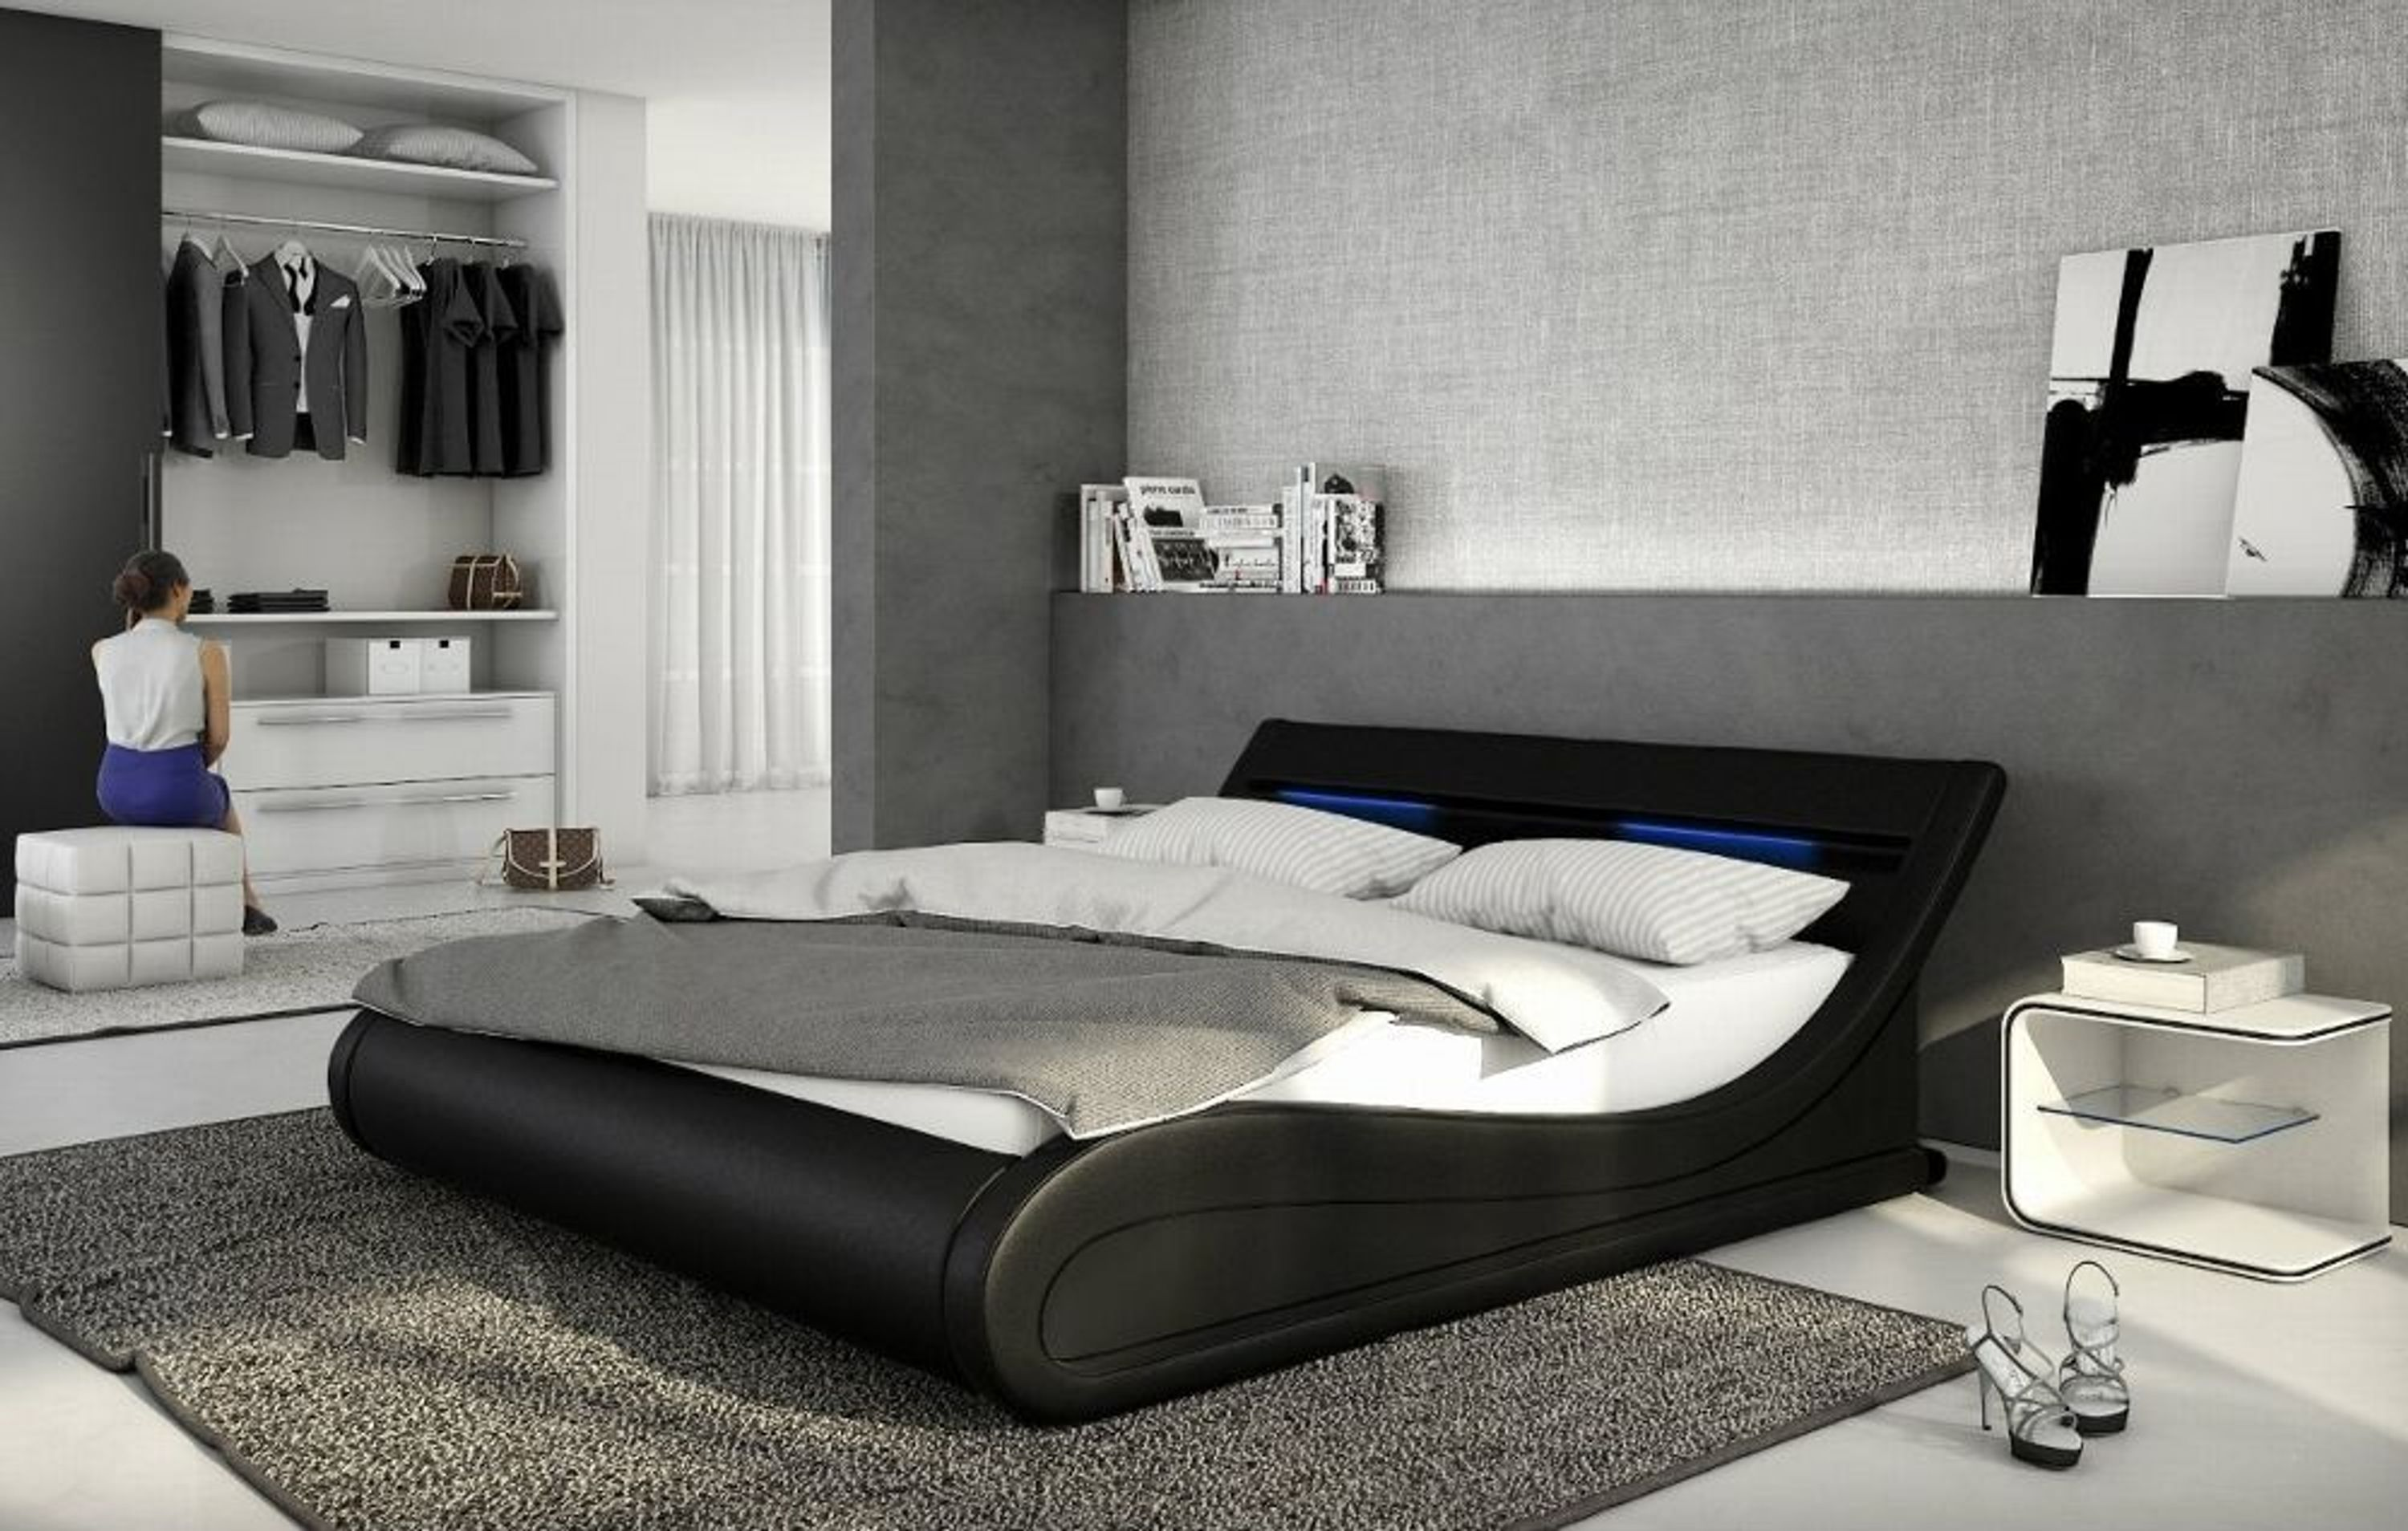 designer leder polsterbett 180 x 200 cm lederbett wei o schwarz gewelltes luxus bett kaufen bei. Black Bedroom Furniture Sets. Home Design Ideas